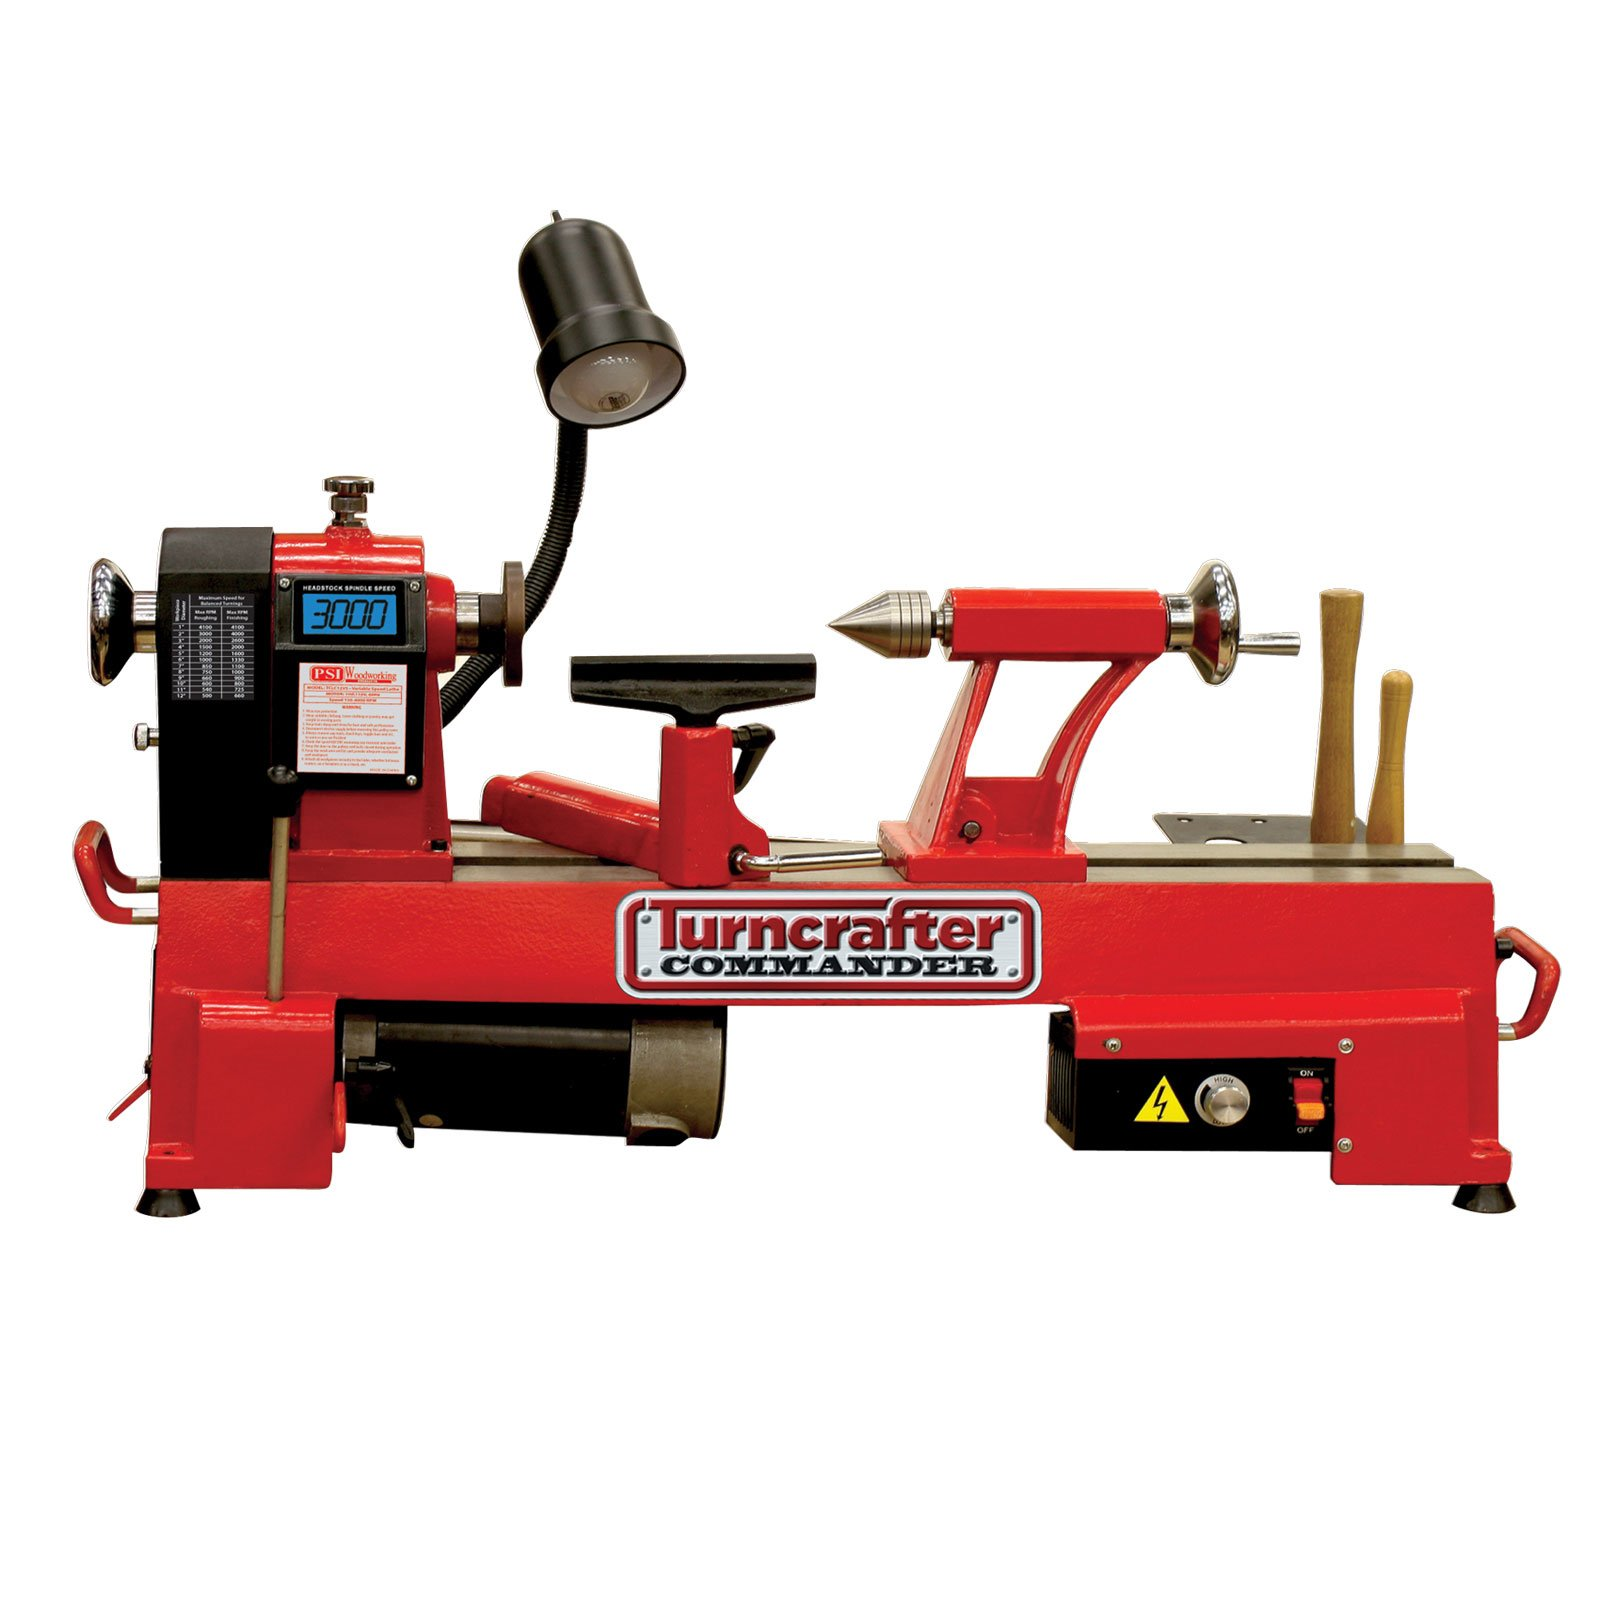 PSI Woodworking KWL-1018VS Turncrafter Commander 10'' Variable Speed Midi Lathe